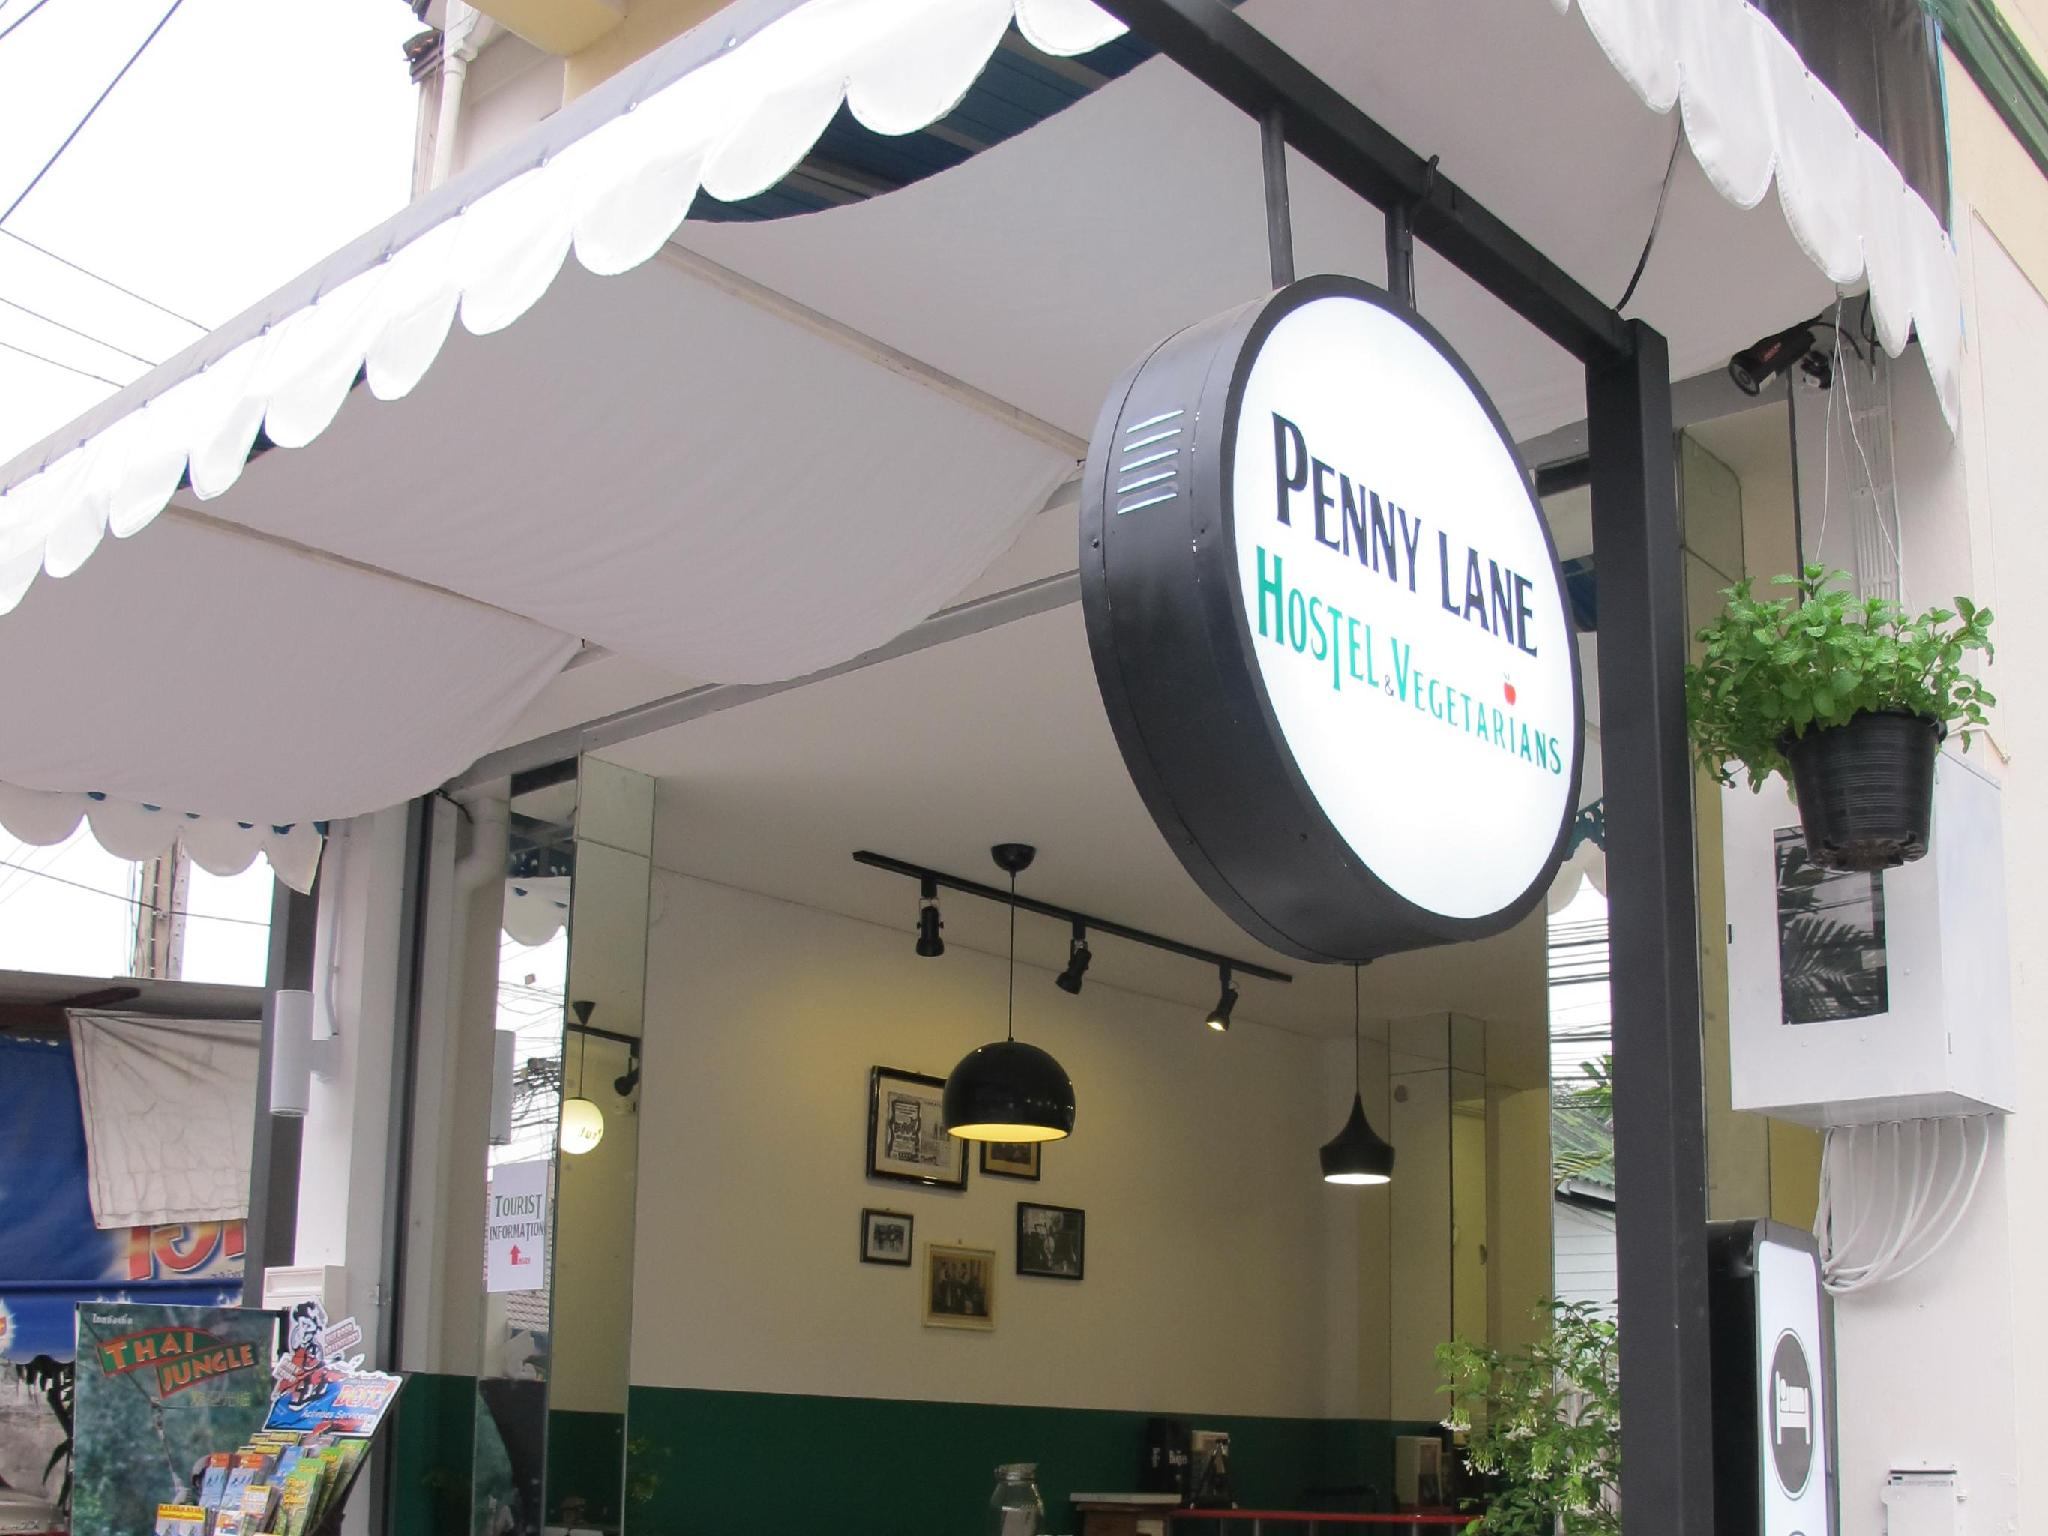 Penny Lane Hostel & Vegetarians